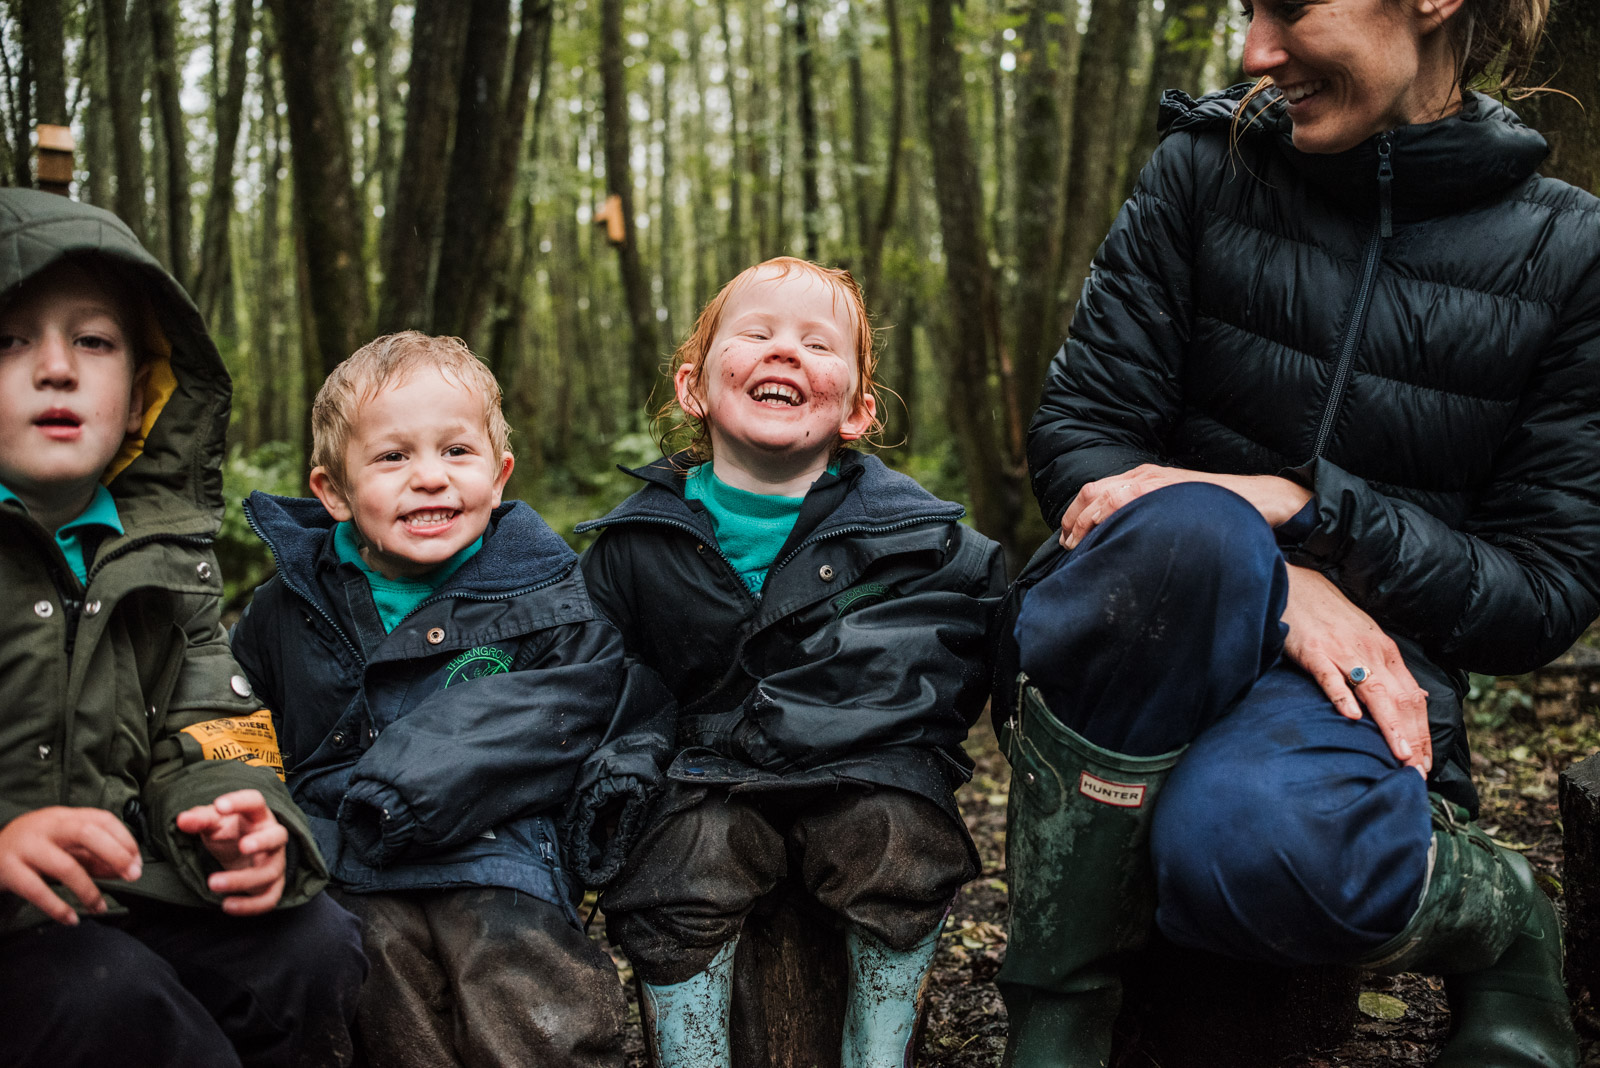 Natural school photography by The Ginger Collective of forest school at Berkshire school Thorngrove